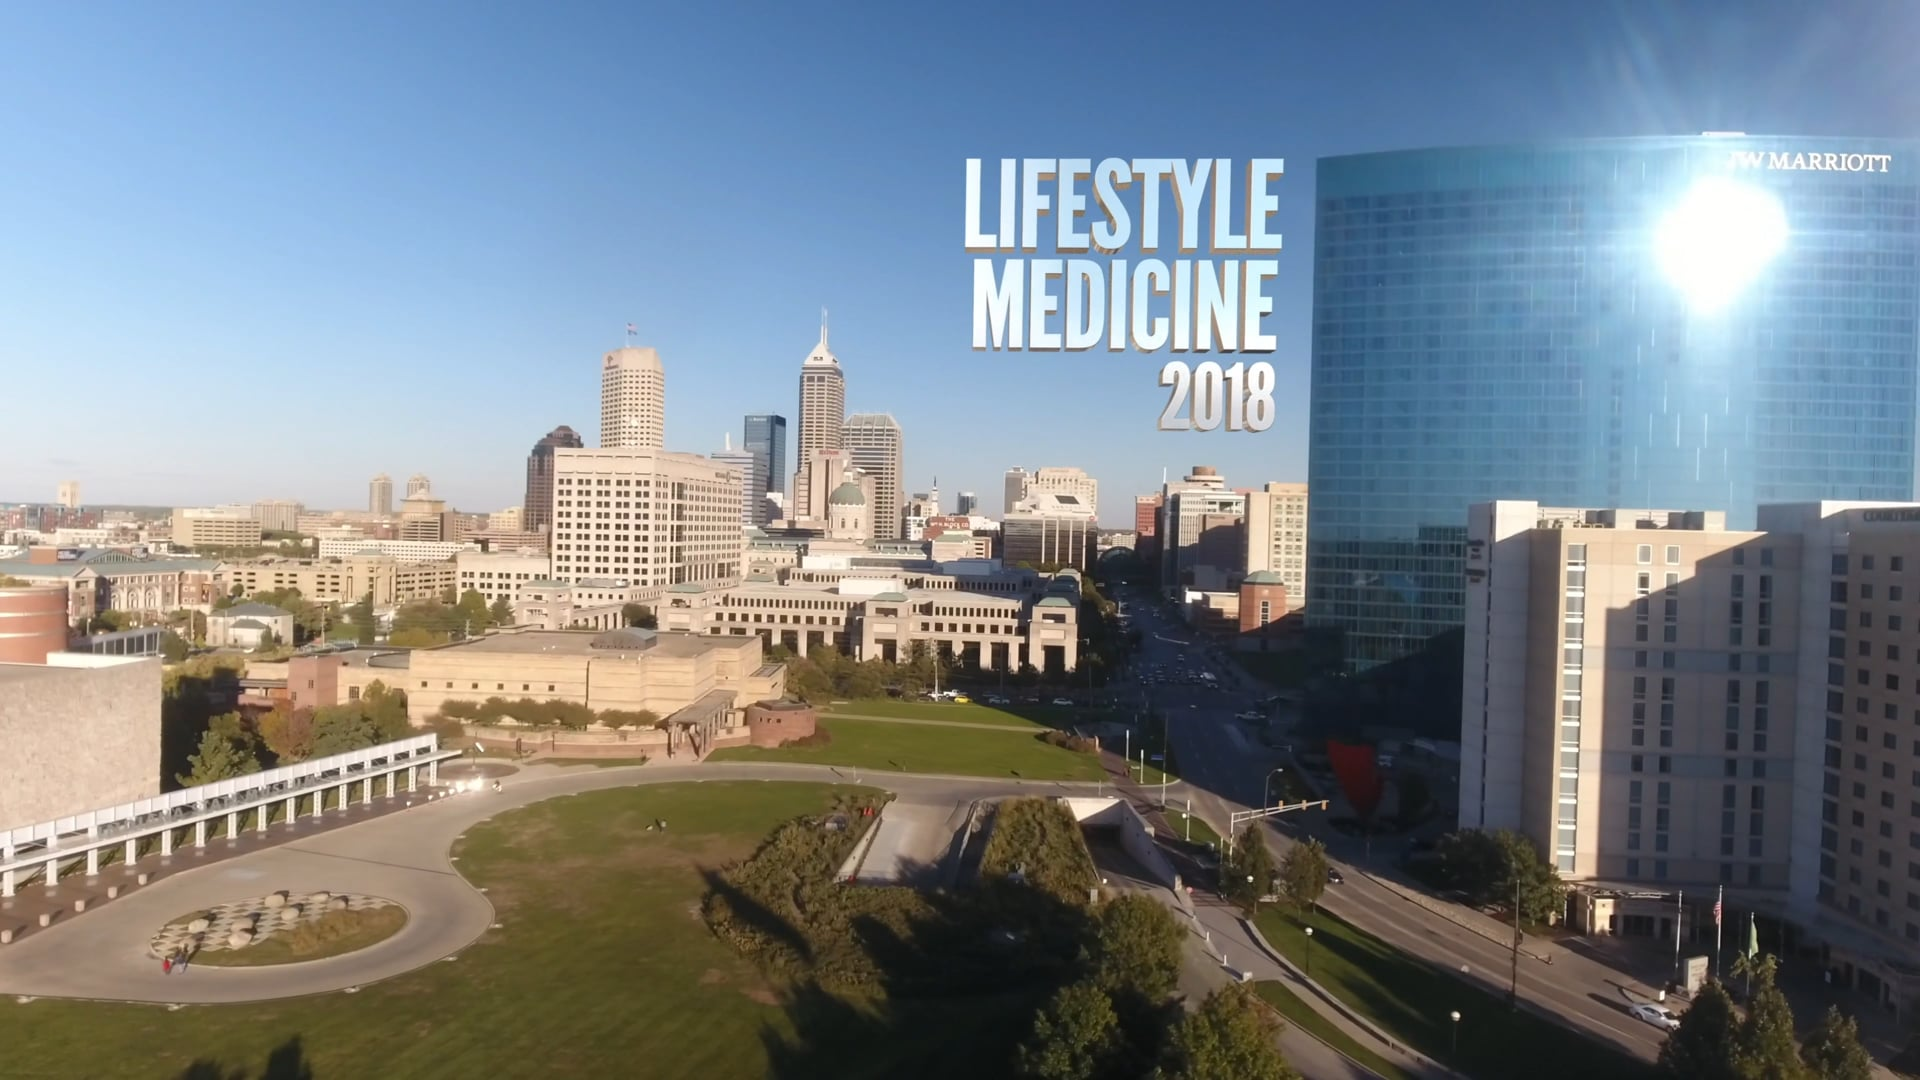 American College of Lifestyle Medicine (ACLM) 2018 - Annual Conference, Indianapolis, Indiana